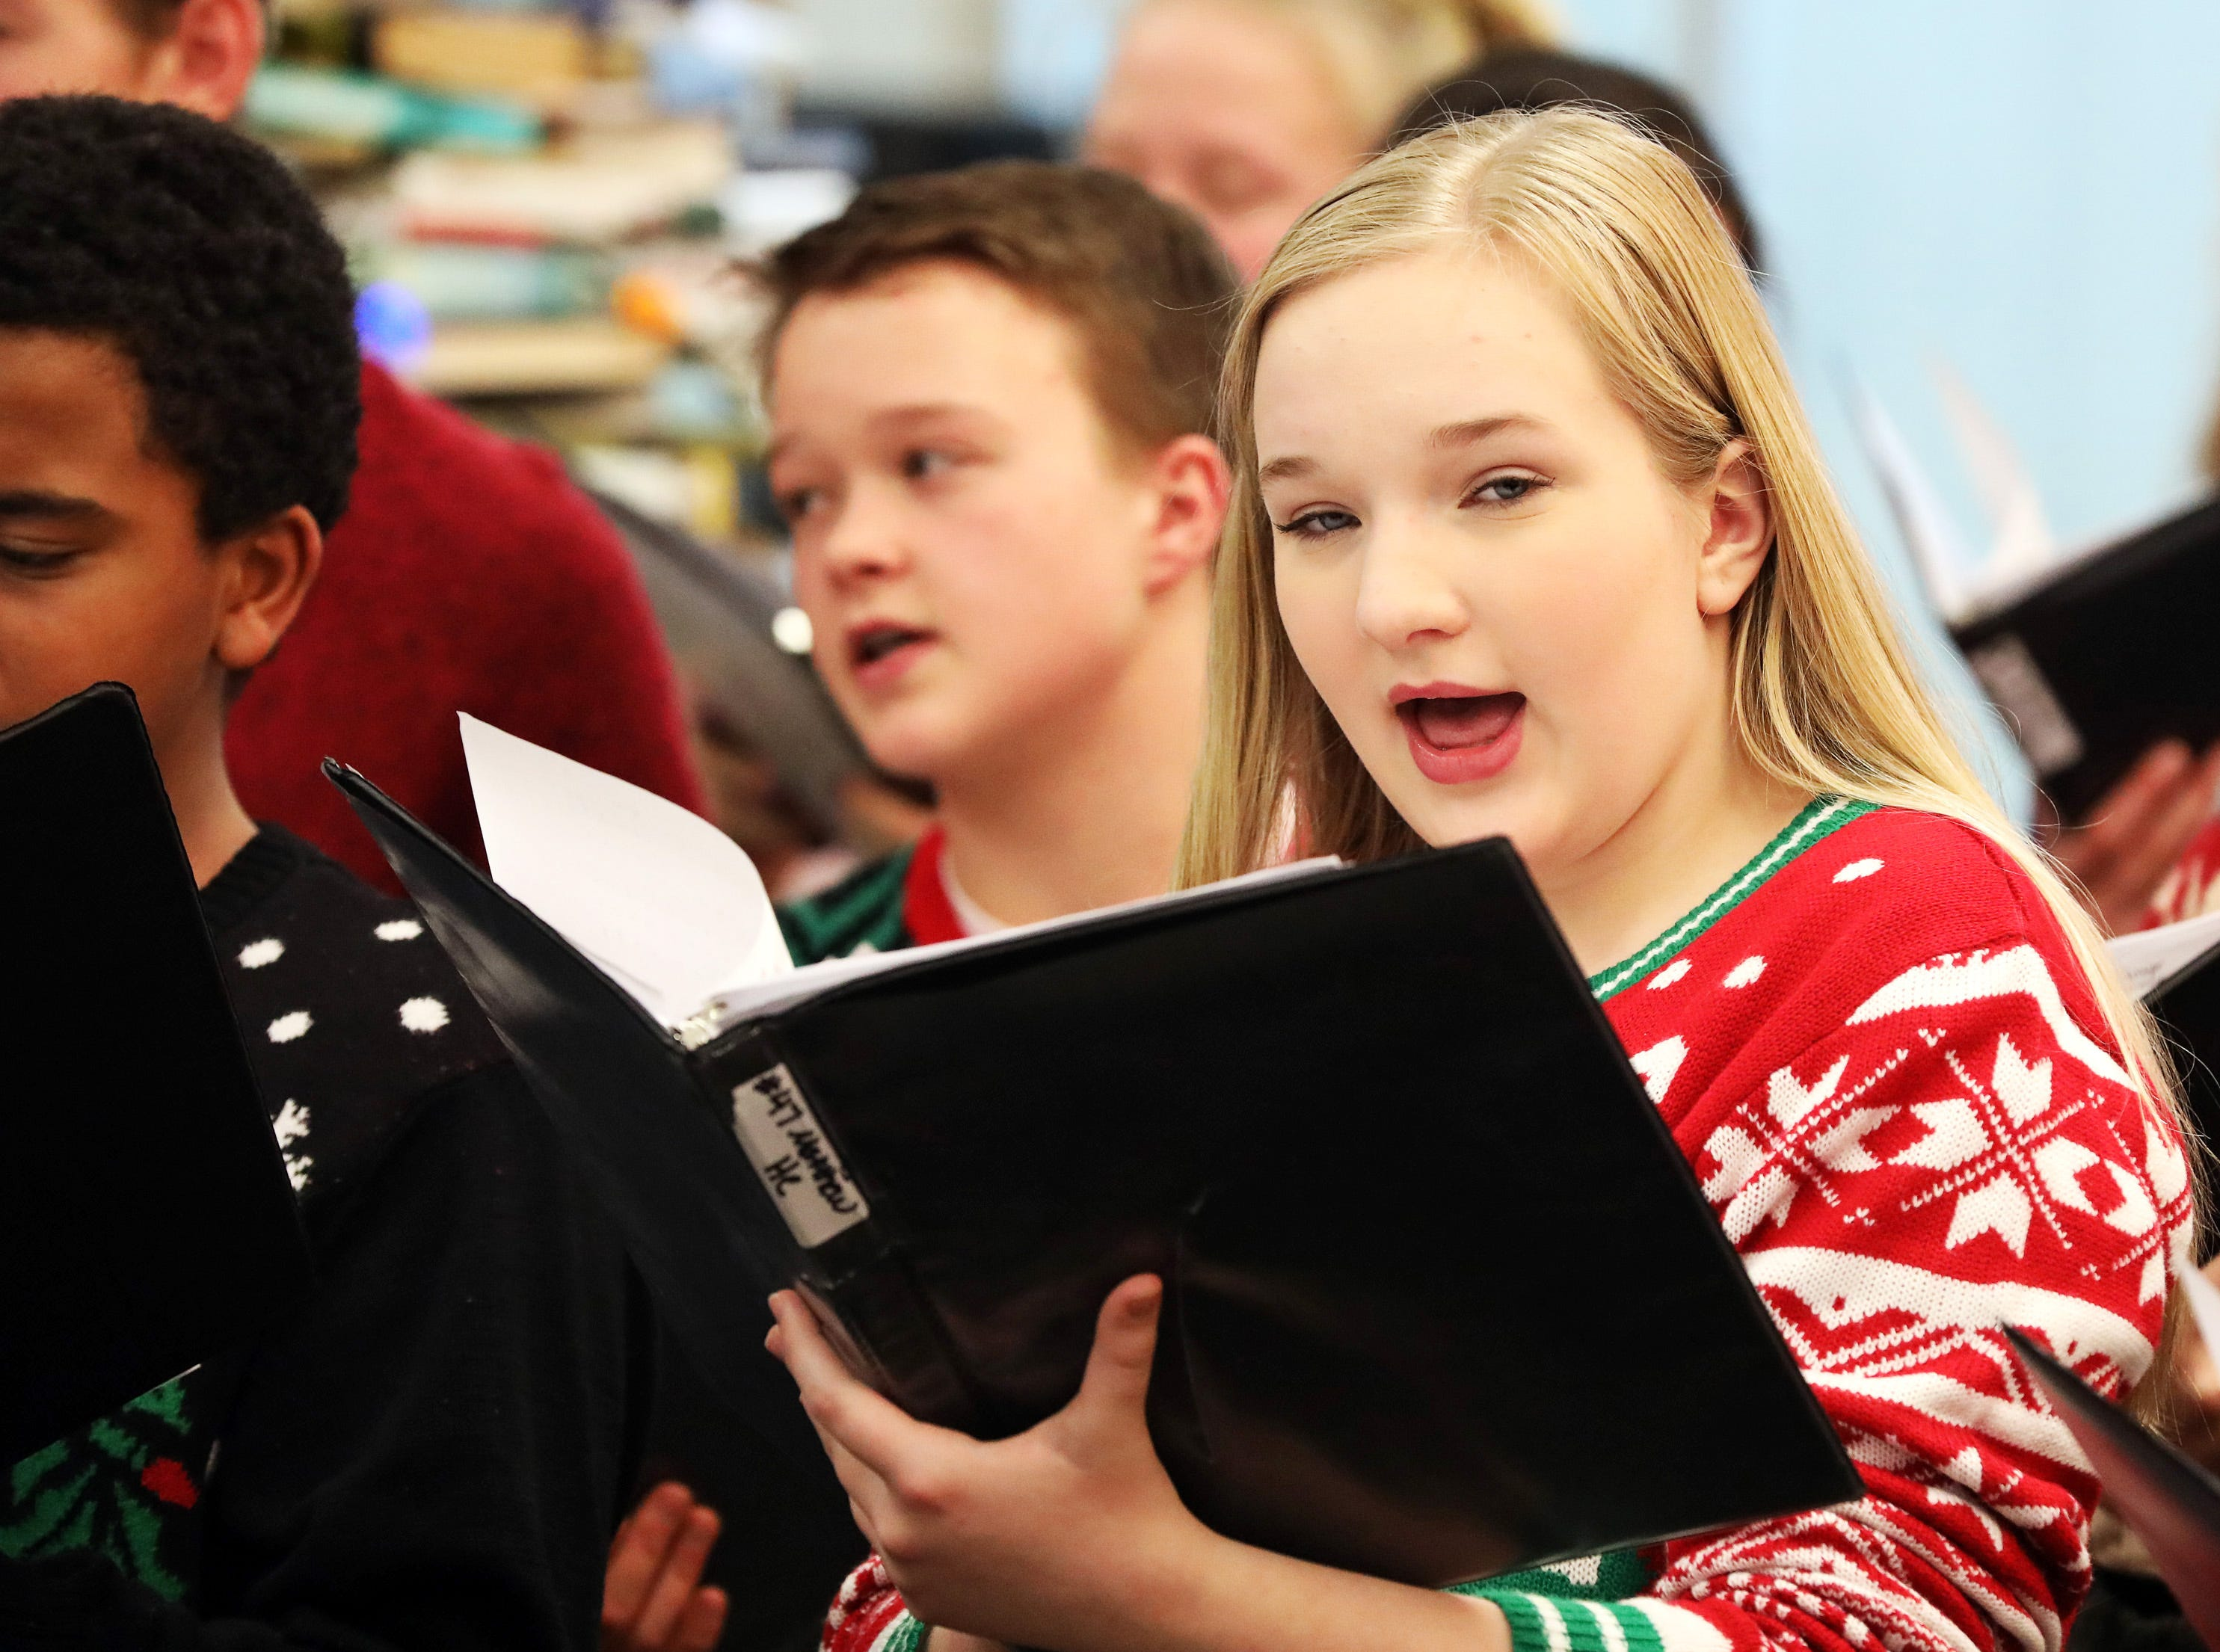 Paige Winkelman sings holiday music with the Johnston Middle School Ninth Grade Chamber Choir during Holidays in Johnston on Saturday, Dec. 1, 2018 at the Johnston Public Library.